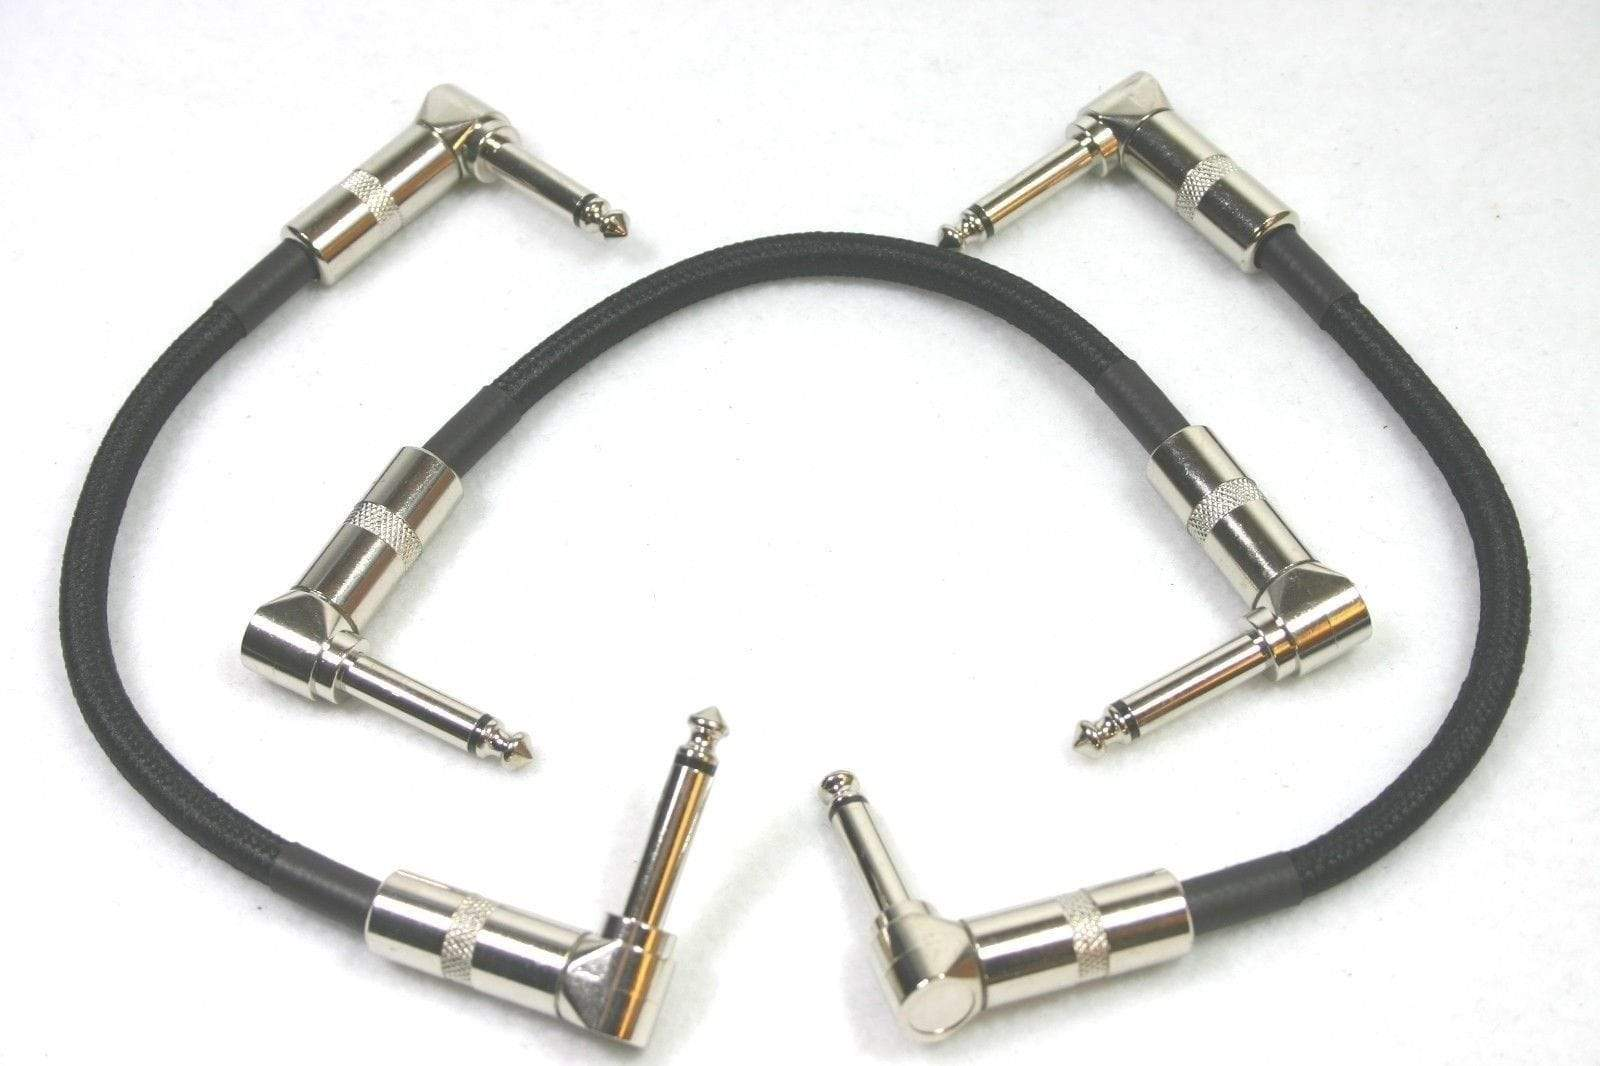 "PIG HOG PATCH CABLES 3 PACK 6"" Right-Angle 1/4 Mono Guitar Effect Pedal Board Cable Patch Cord Tweed"